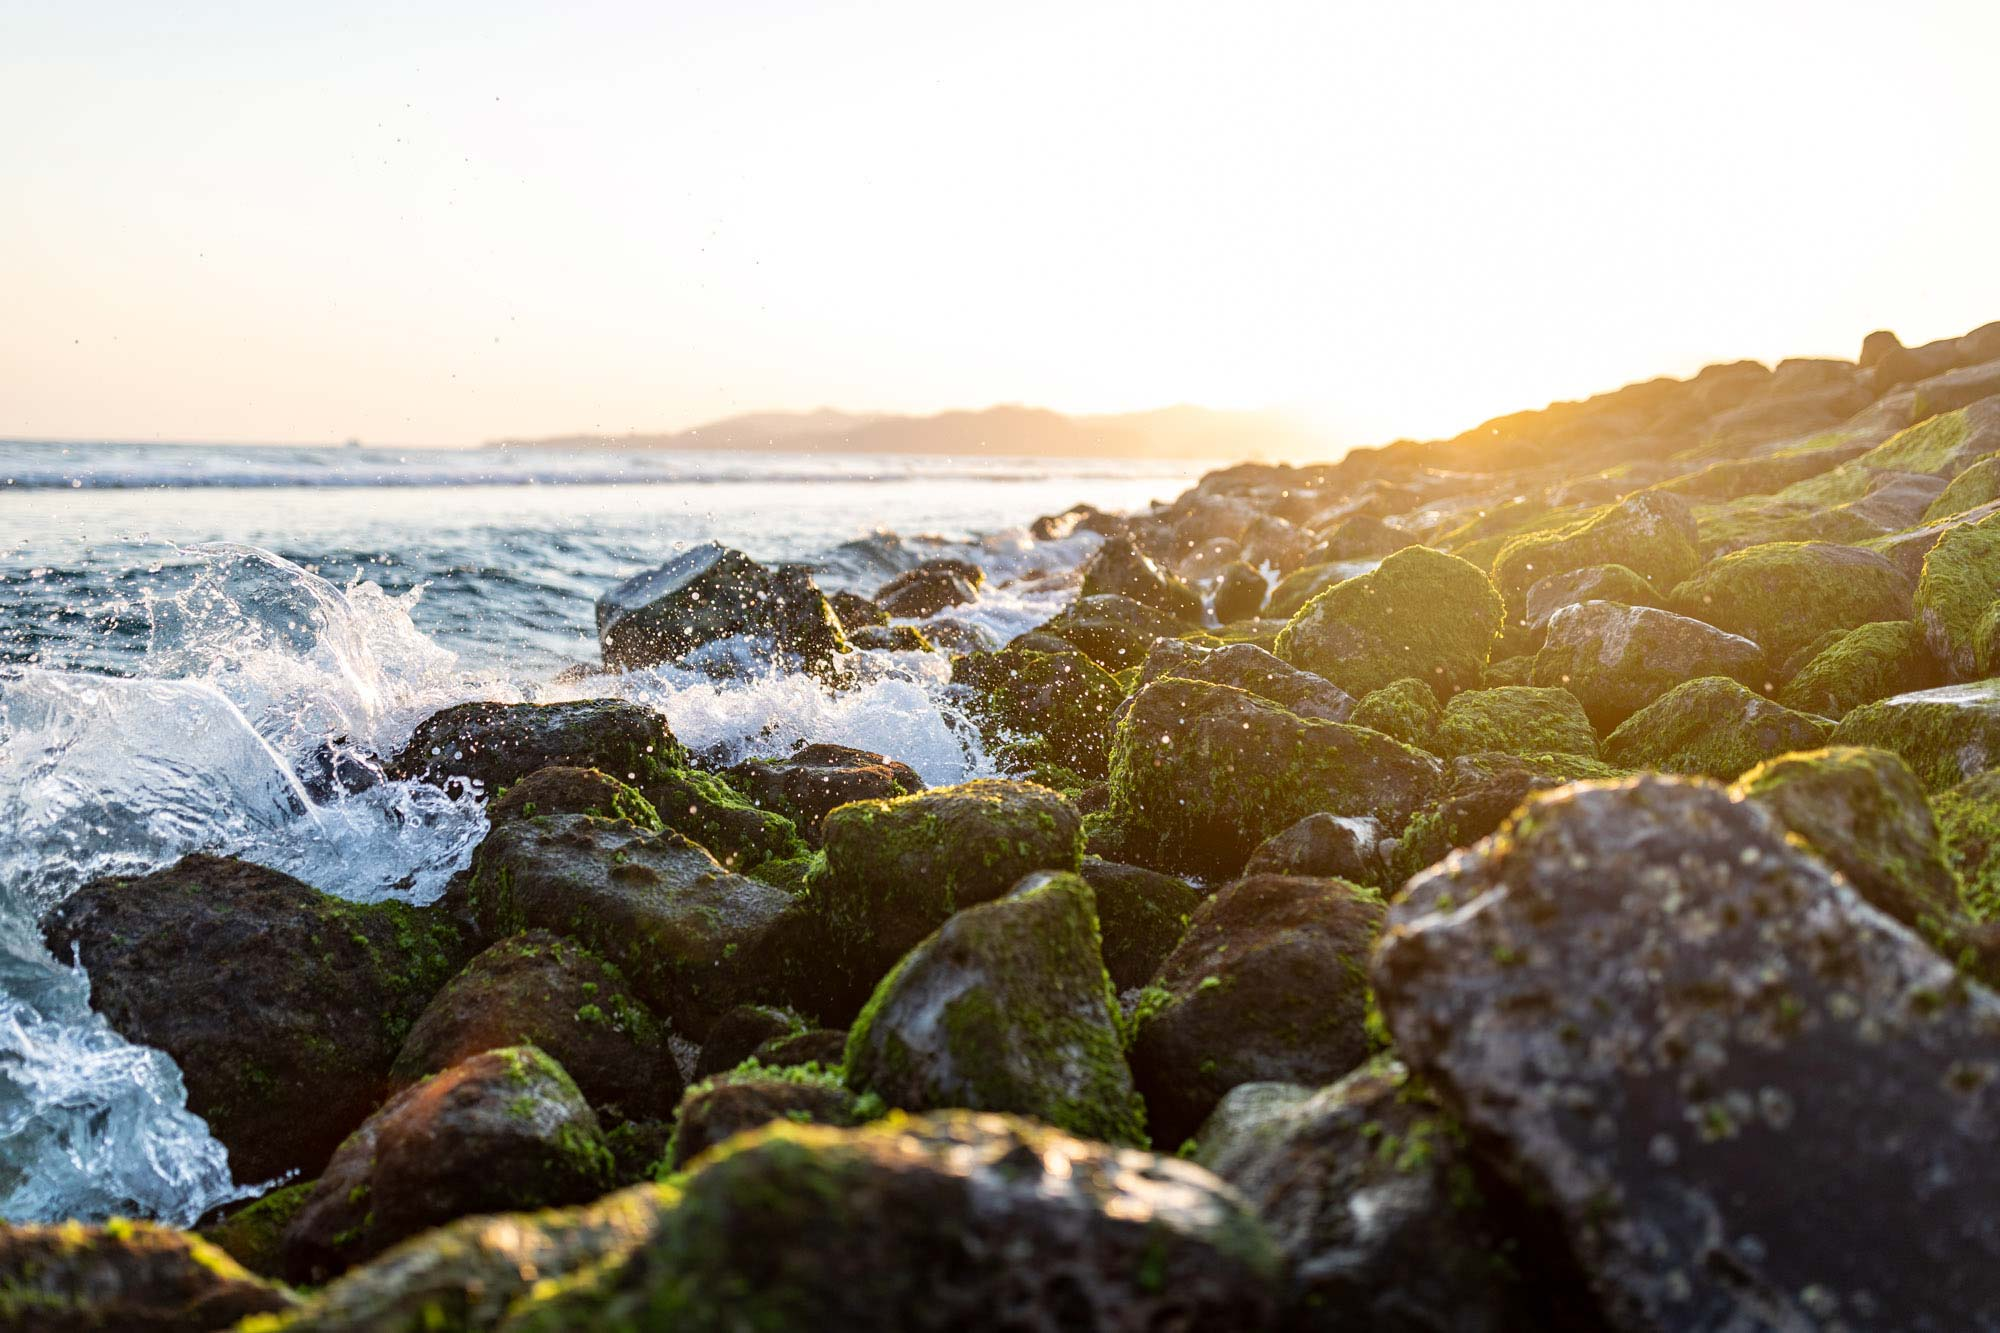 Water splashing on rocks at sunset in Candidasa, Bali, Indonesia. Lens Flare, Travel Photography